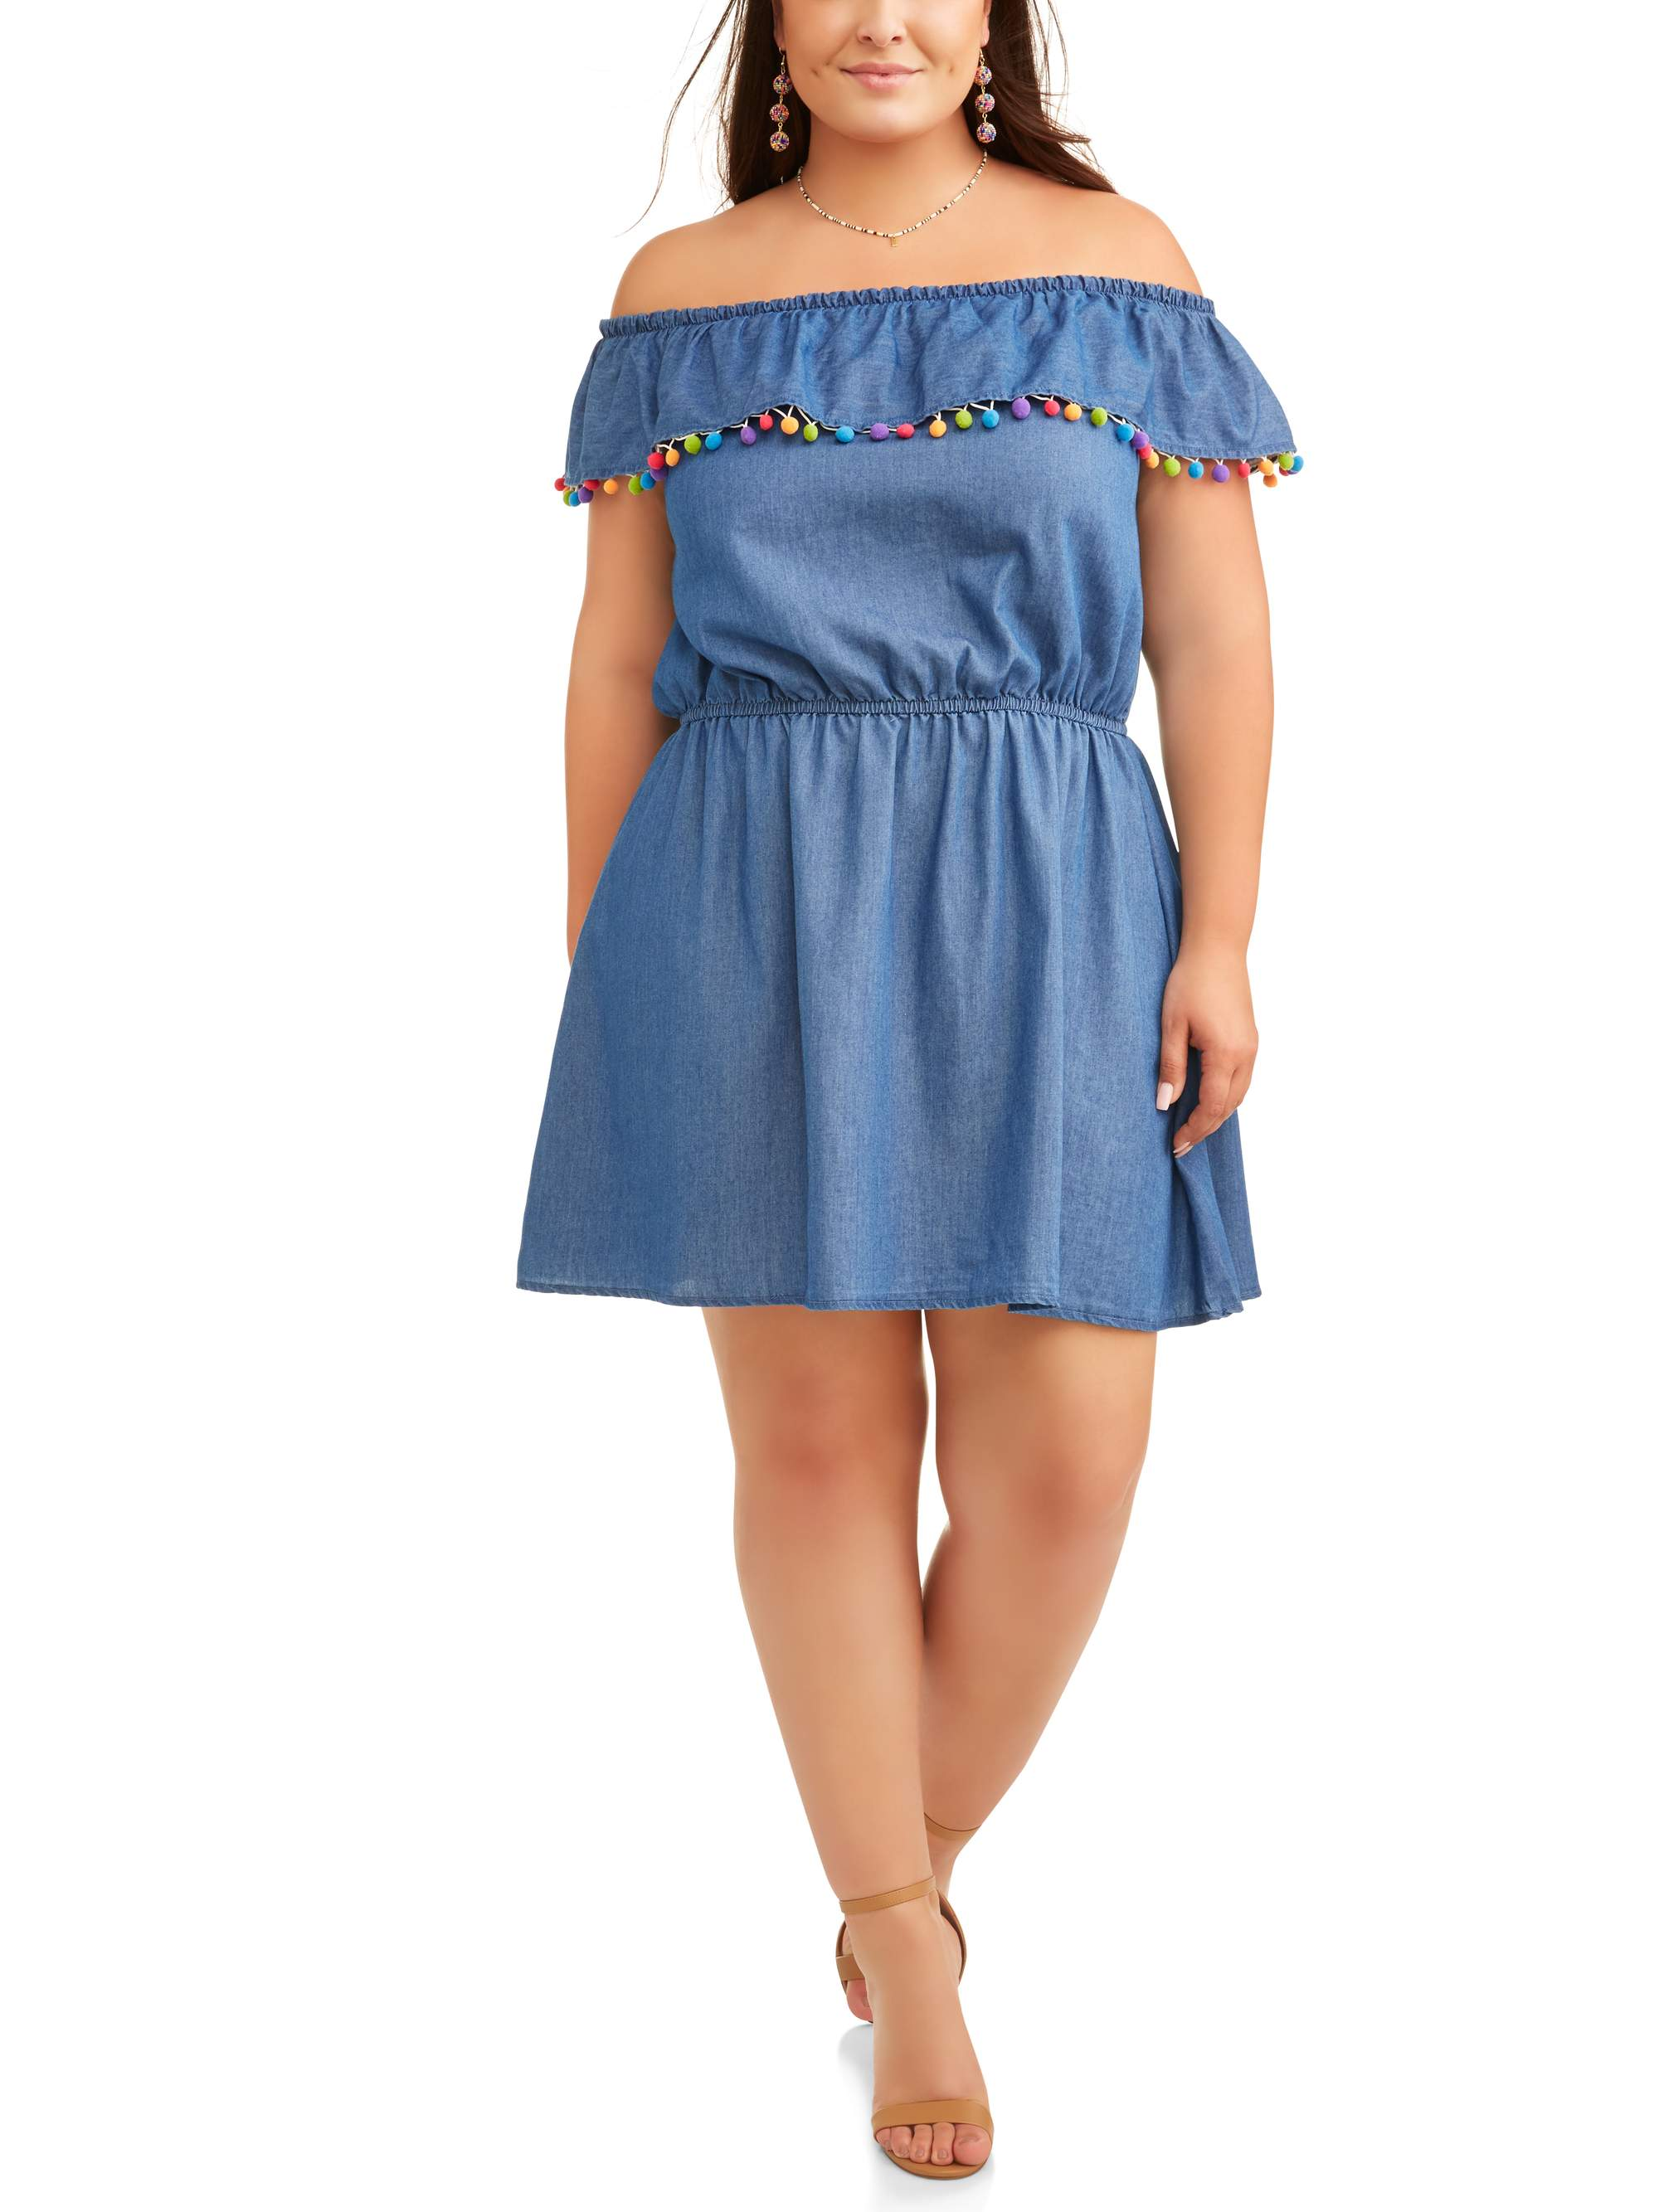 Doneck Plus Size Clothing